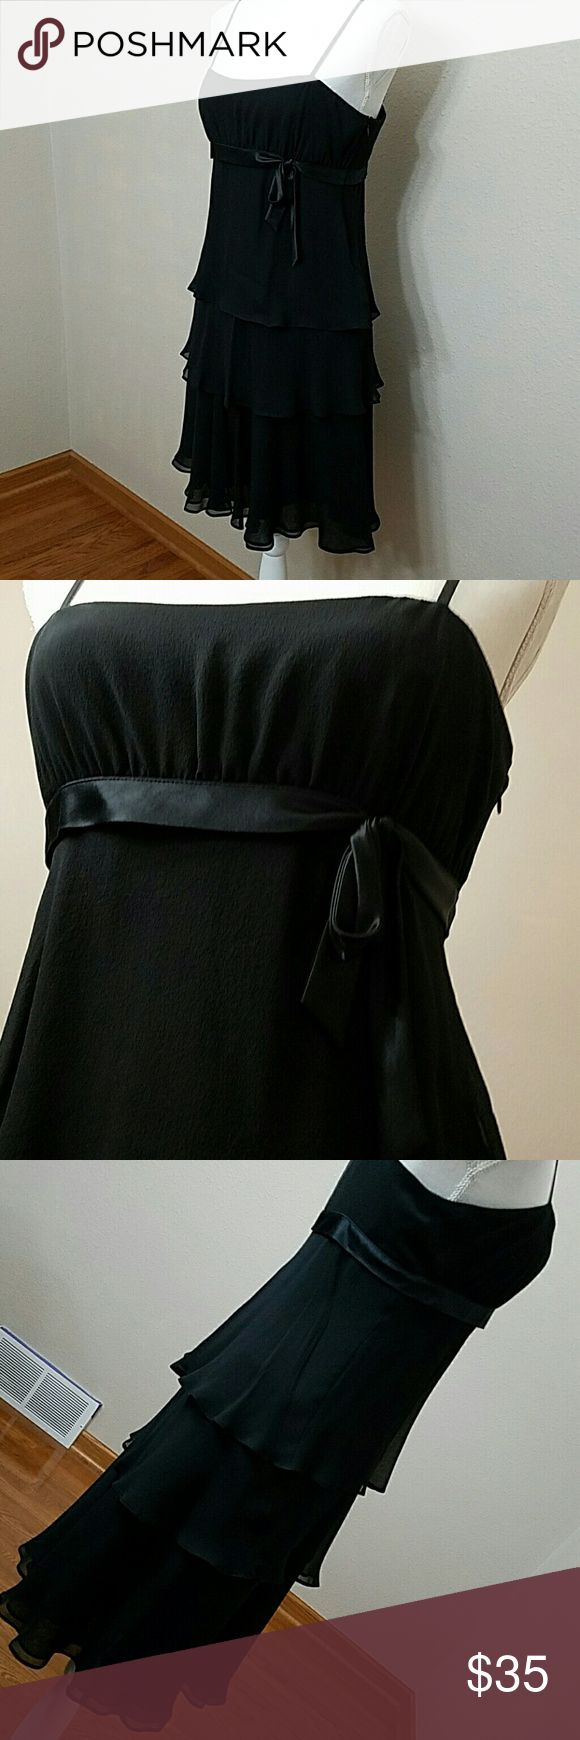 "EUC Silk Nine West Perfect Little Black Dress 6 Three layers of silky, crepe like material cascade down. A satiny trim all the way around the dress accenting the breastline, tied in a bow as if you were a present! You will be in this dress! Spaghetti straps, Fully lined with acetate, another layer of that of silky slip and then the outer dress. 100% Silk. 36"" overall length top of shoulders to bottom of dress. Waist 18"" across, breastline 15.5"" across. (Measurements taken from inside for…"